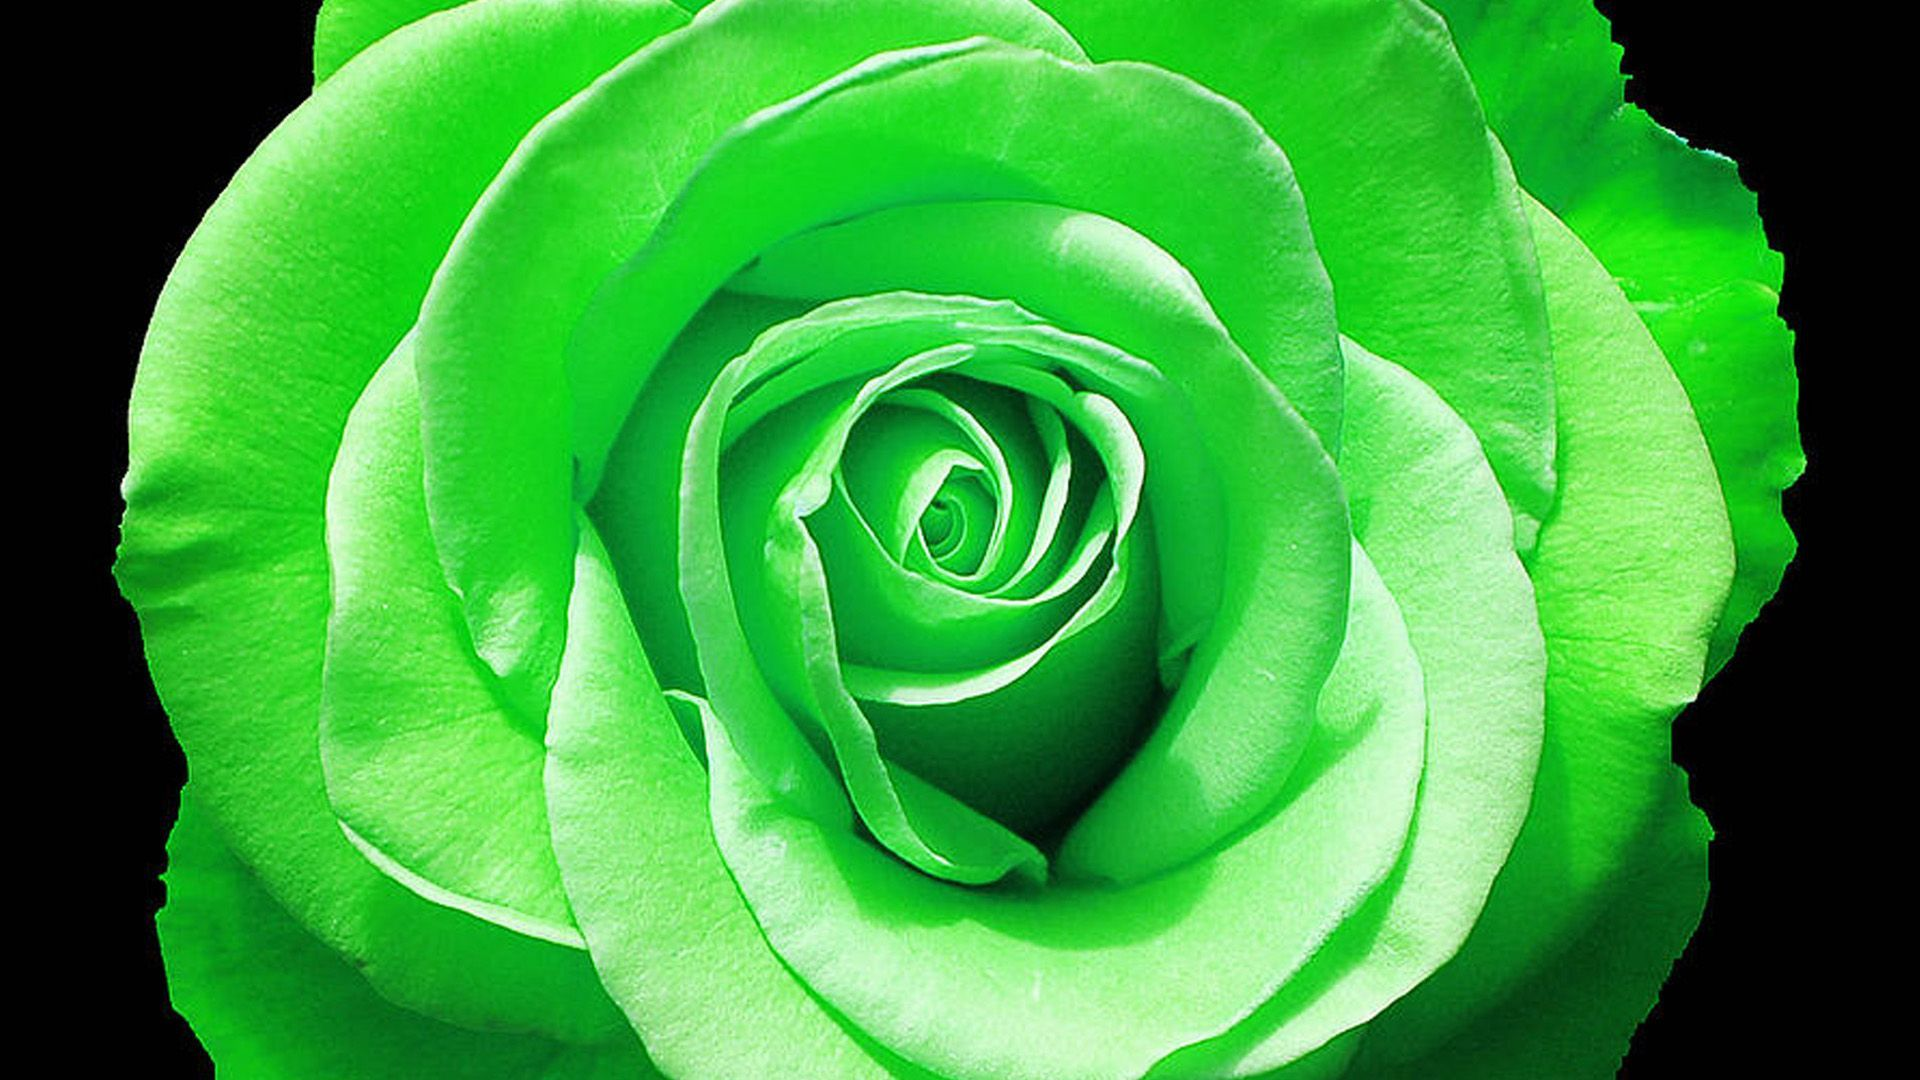 Green Roses Wallpapers Top Free Green Roses Backgrounds Wallpaperaccess